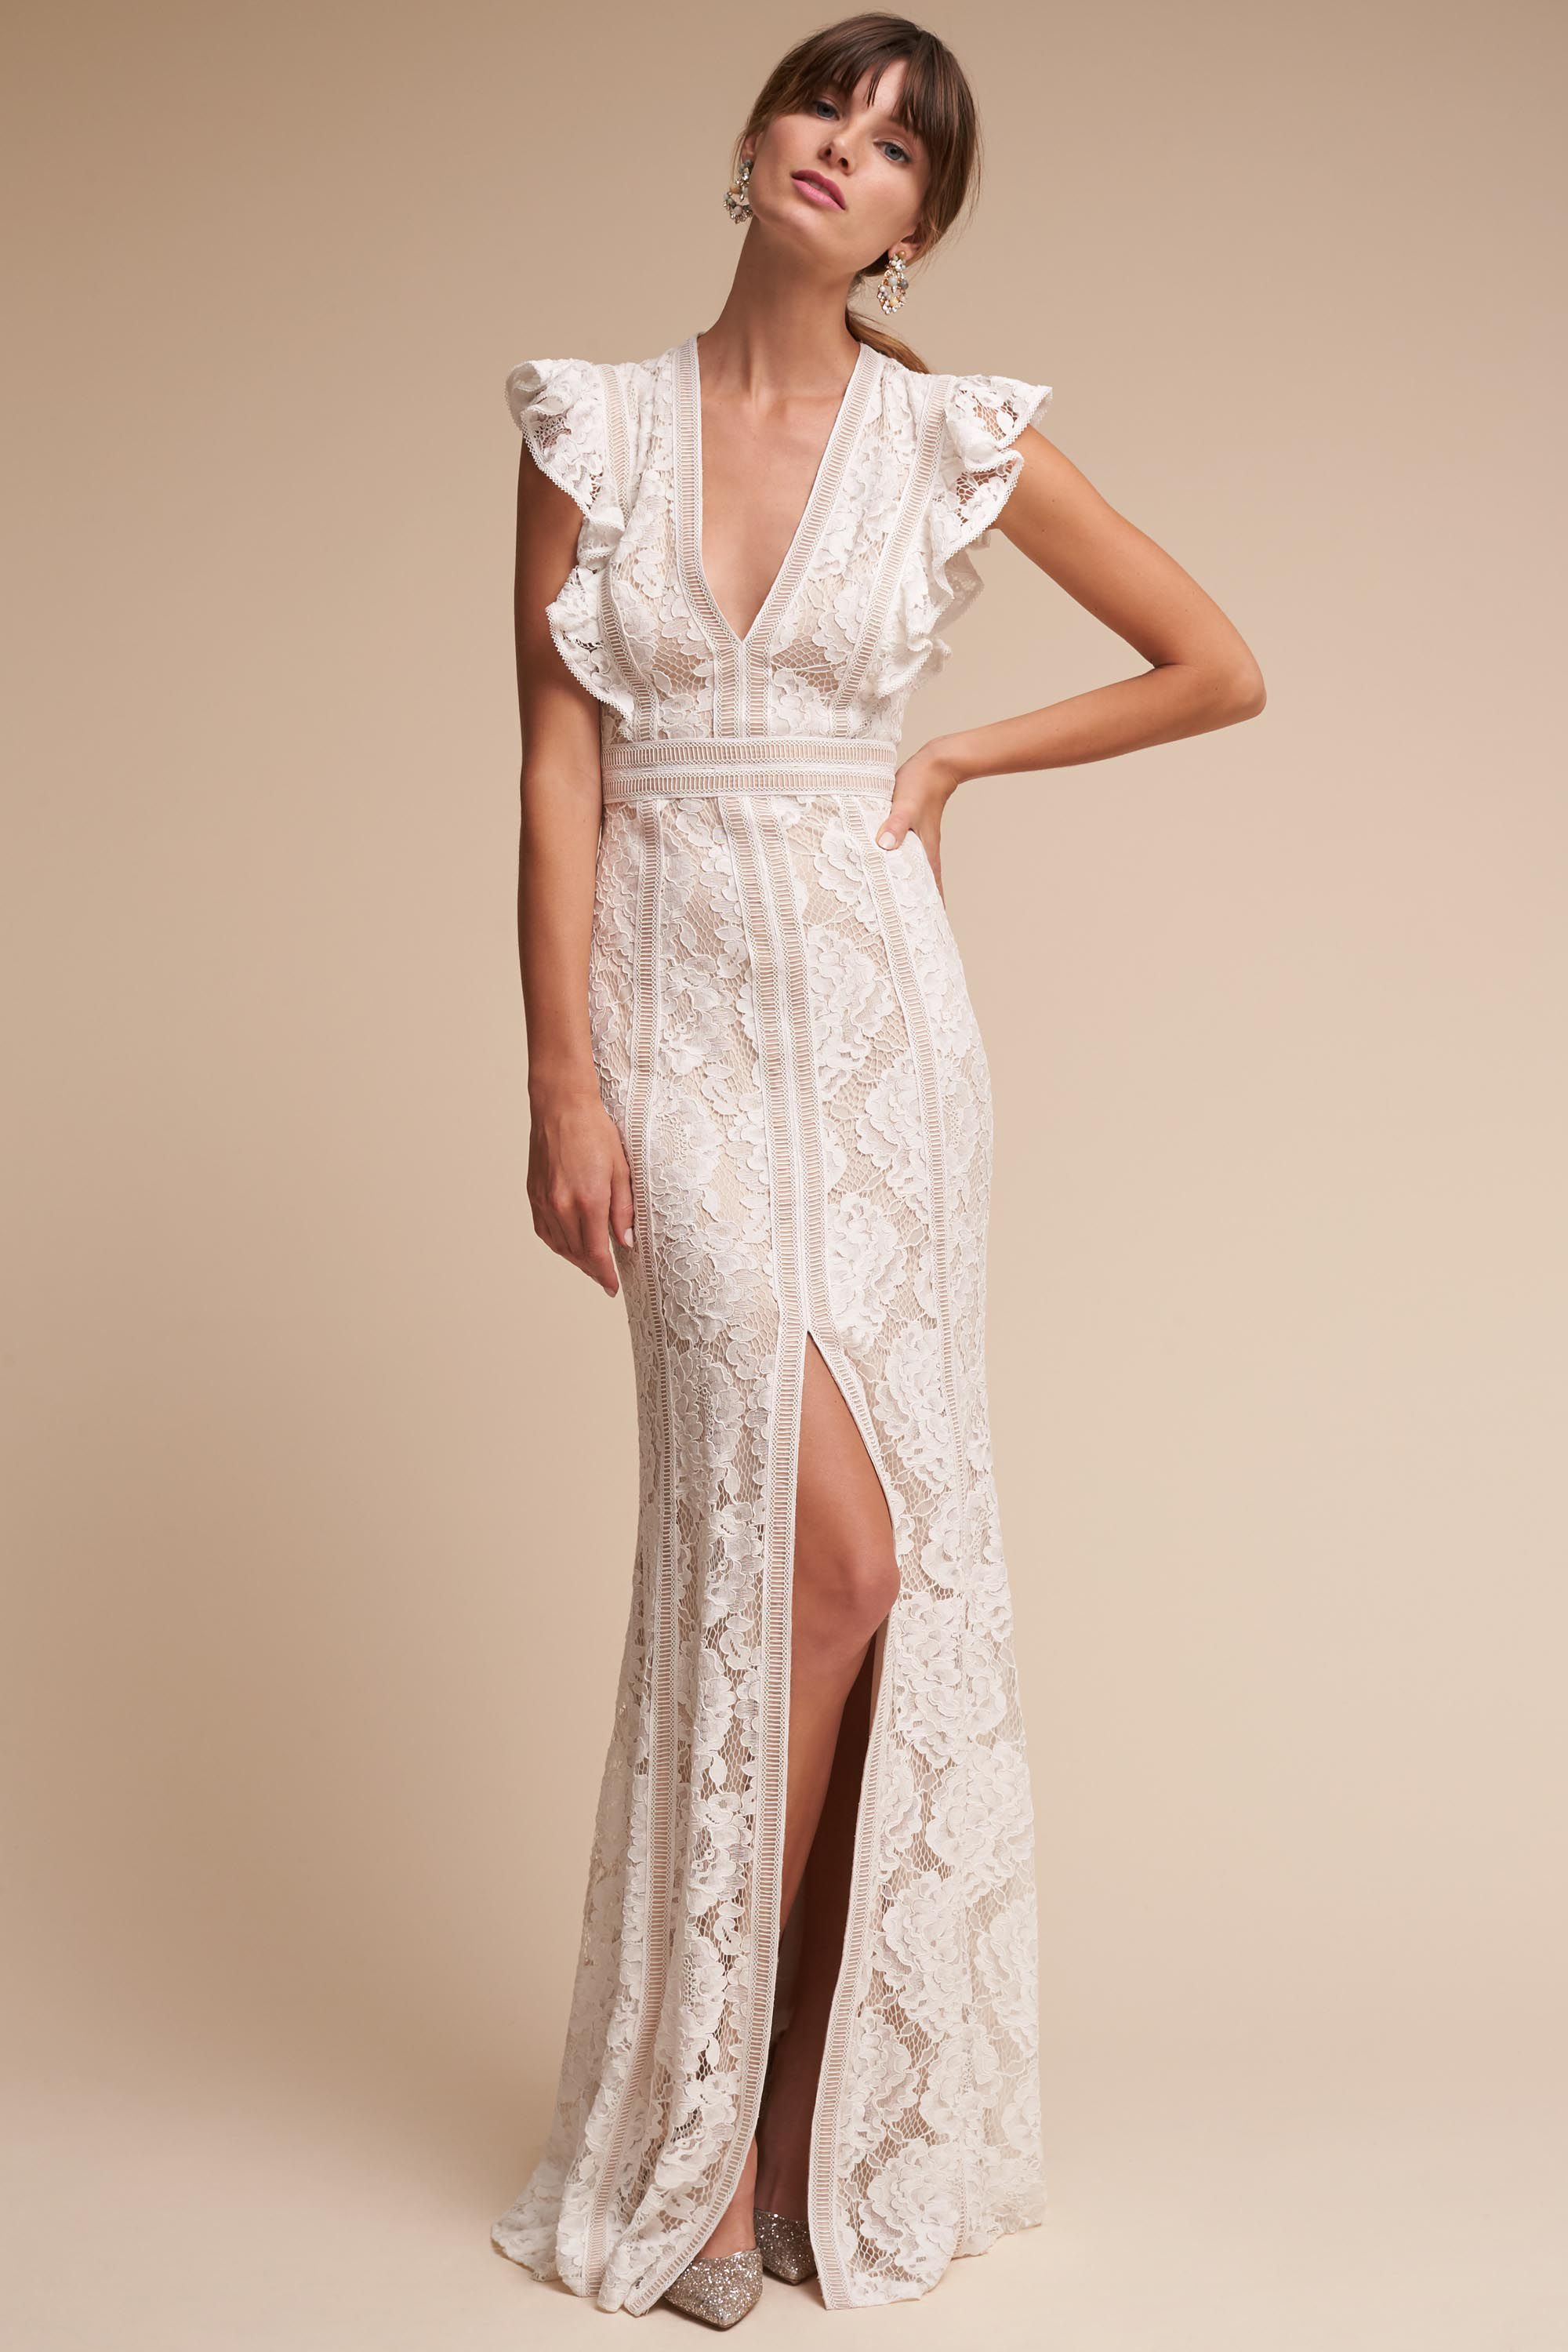 Informal wedding dresses for second marriage  Placid Gown from BHLDN  marry me  Pinterest  Gowns Wedding